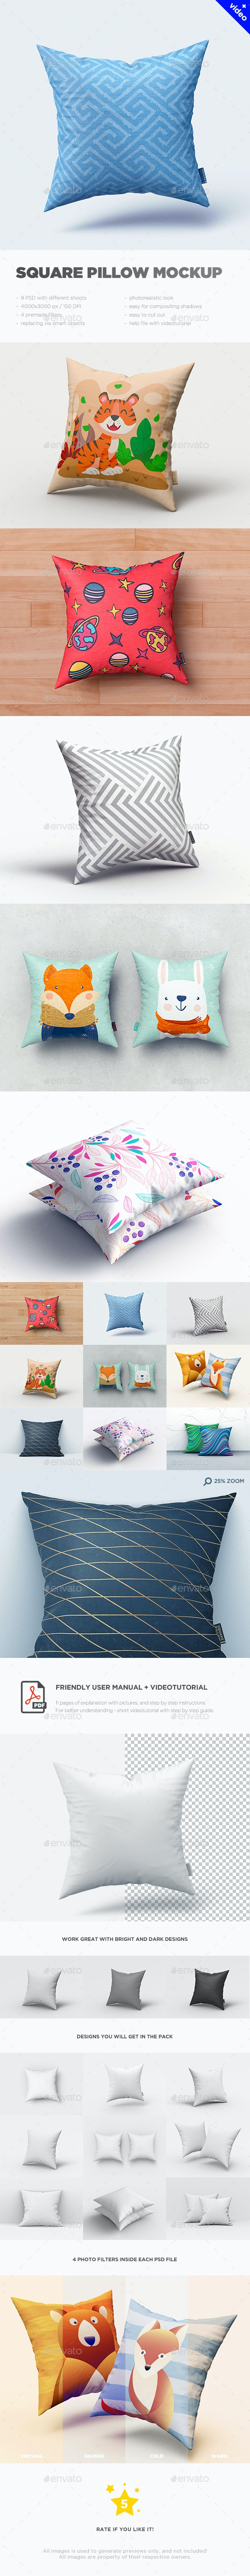 Square Pillow MockUp - Miscellaneous Product Mock-Ups